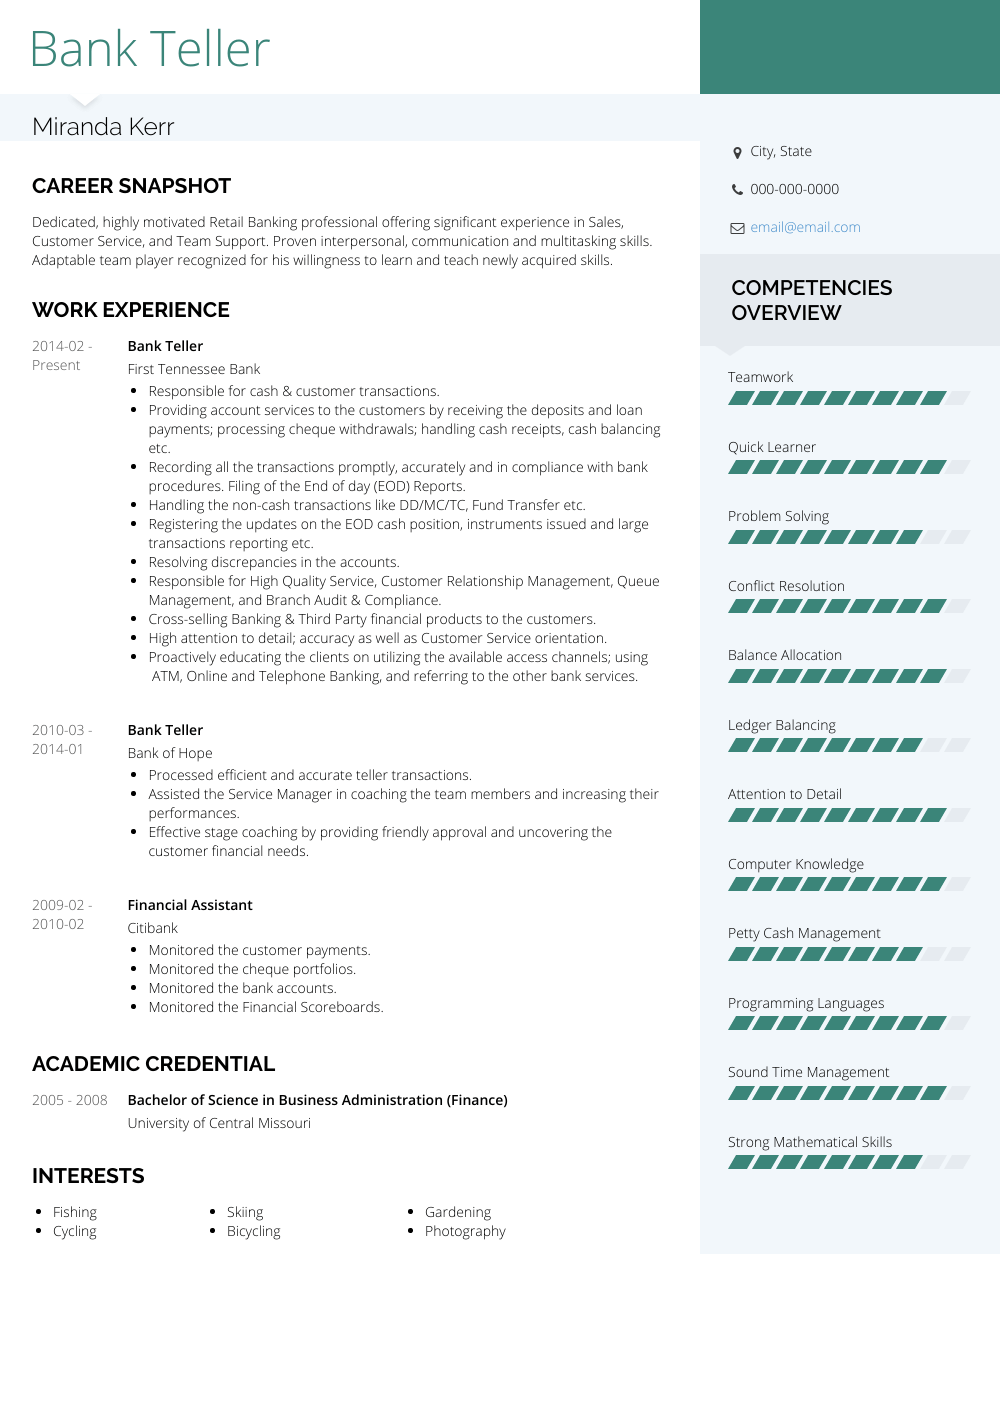 Bank Teller Resume Samples And Templates Visualcv